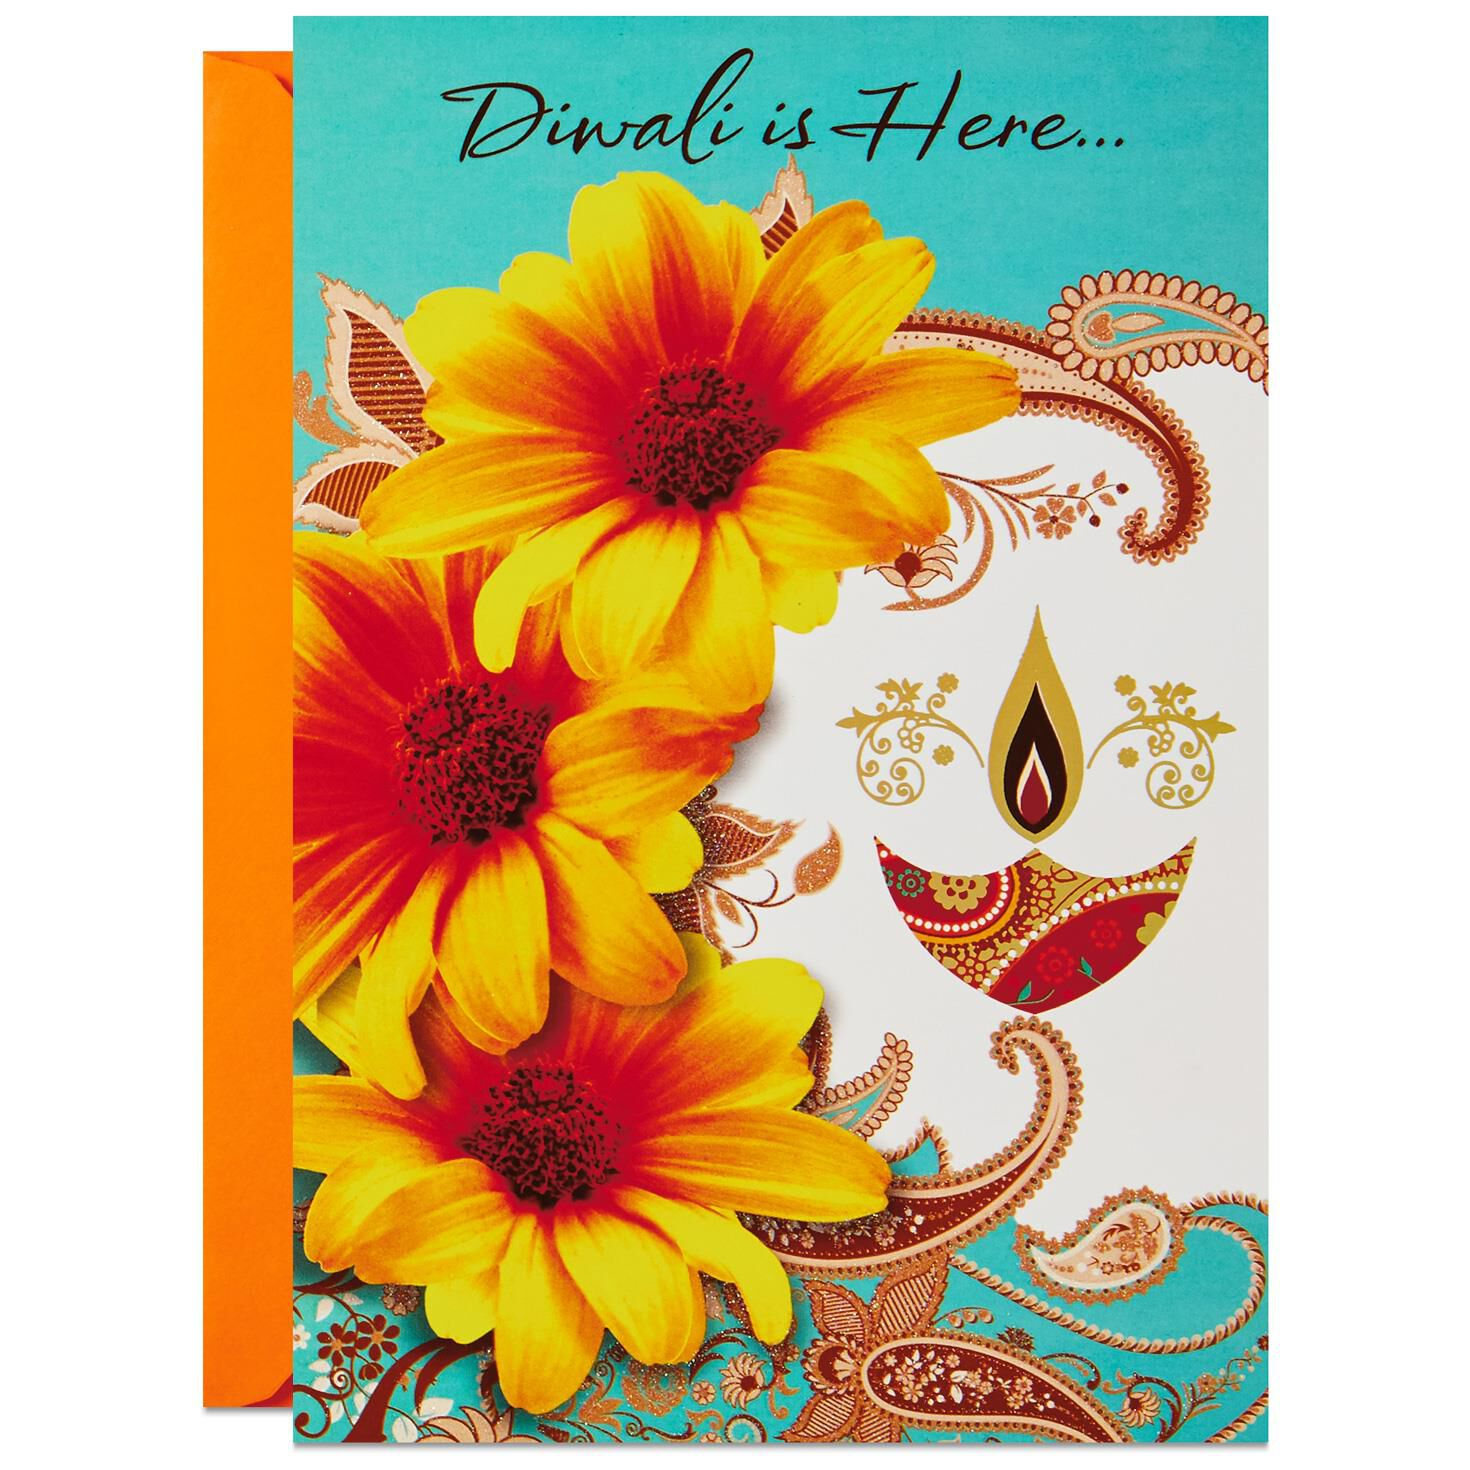 The Festival Of Lights Is Here Diwali Card Greeting Cards Hallmark